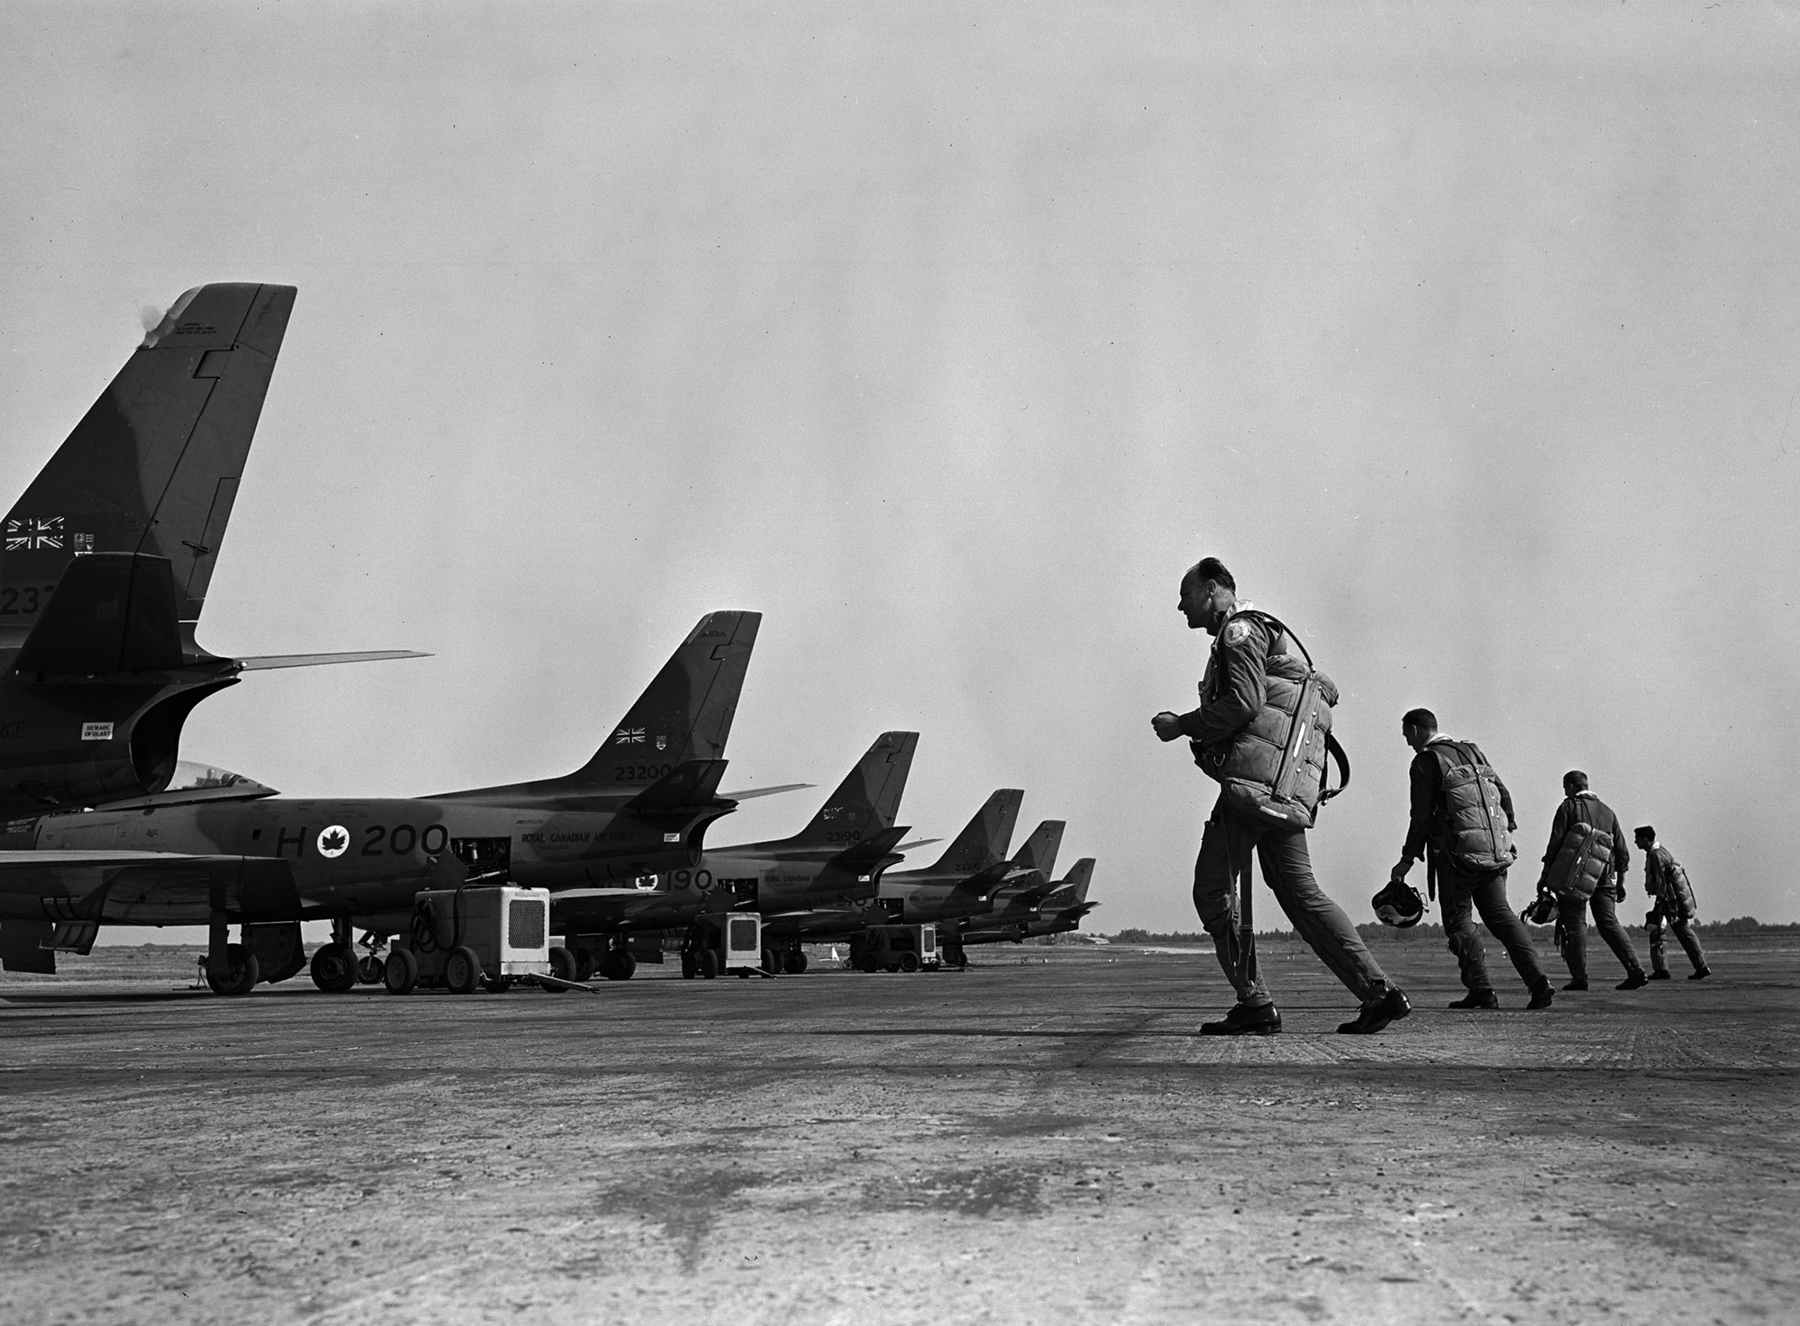 Pilots from 430 Squadron scramble for their F-86 Sabre jet aircraft during training at Rabat, Morocco, on August 29, 1955. PHOTO: PL-82680, DND Archives